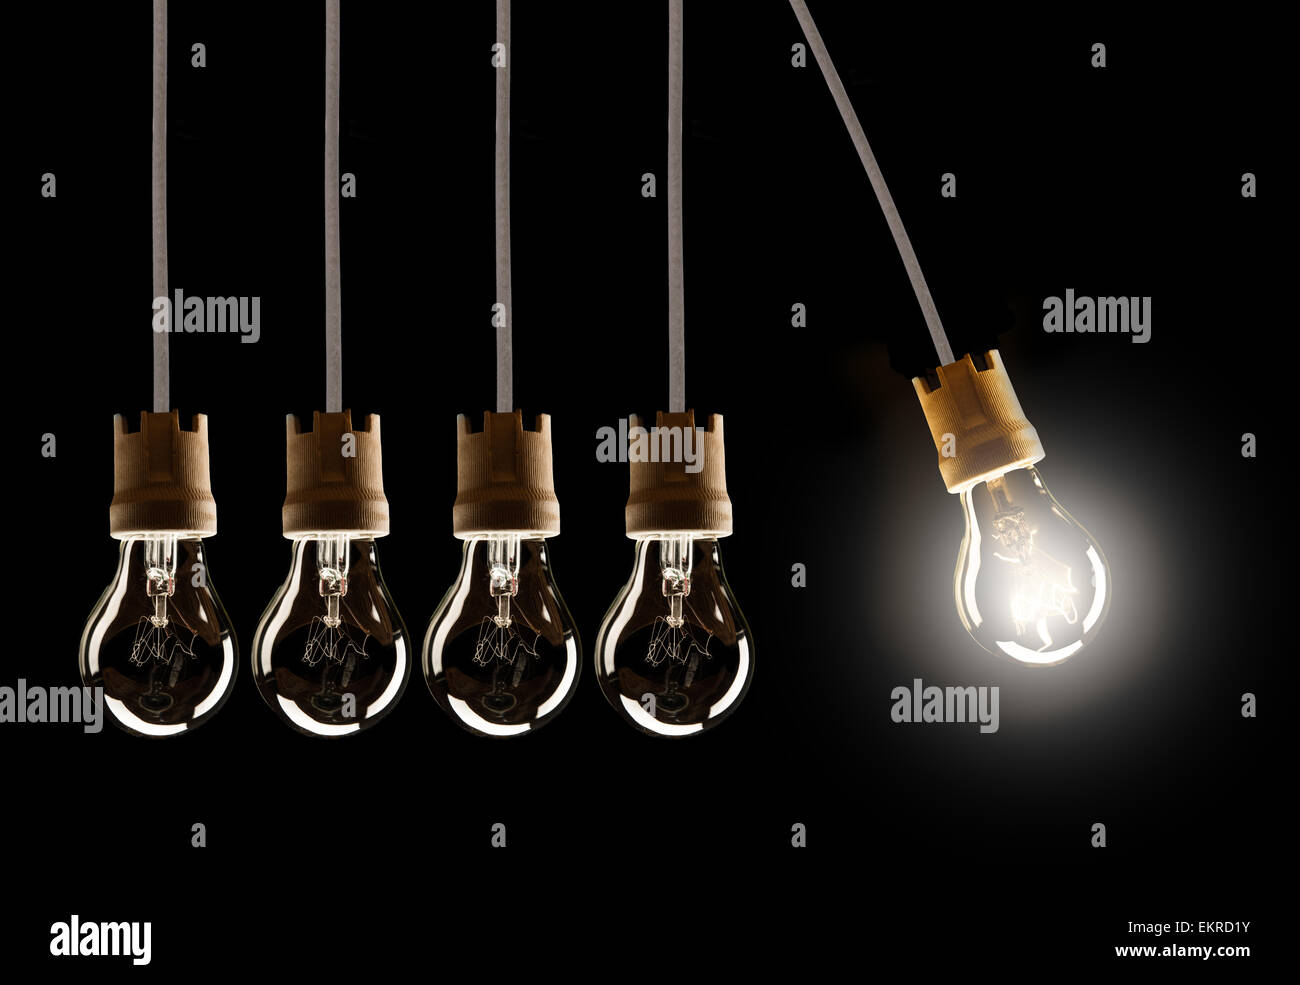 Light bulbs in row with single one in motion and shinning, isolated on black background - Stock Image